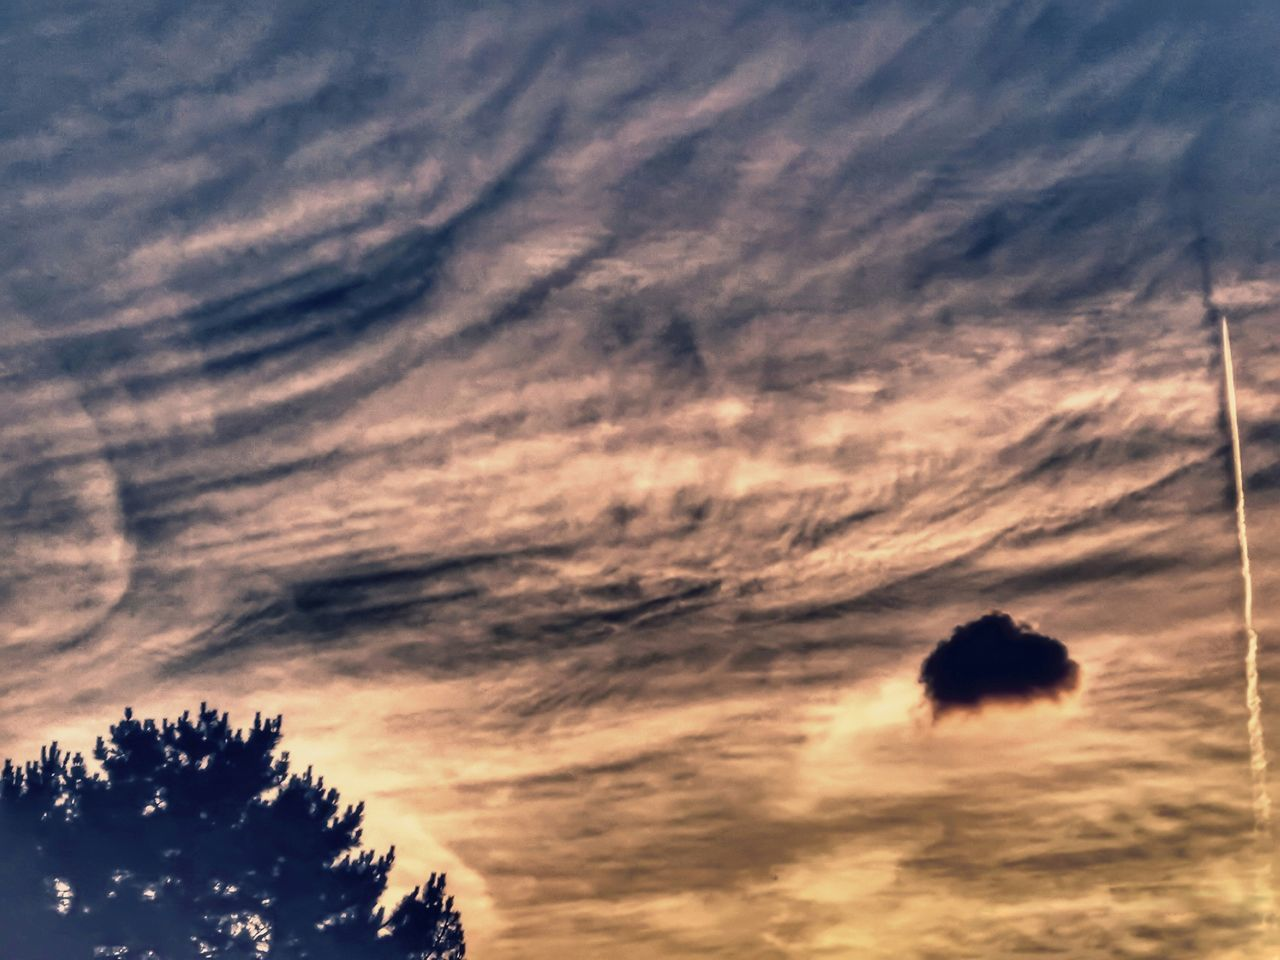 sunset, sky, low angle view, tree, cloud - sky, no people, silhouette, nature, beauty in nature, tranquility, tranquil scene, scenics, outdoors, day